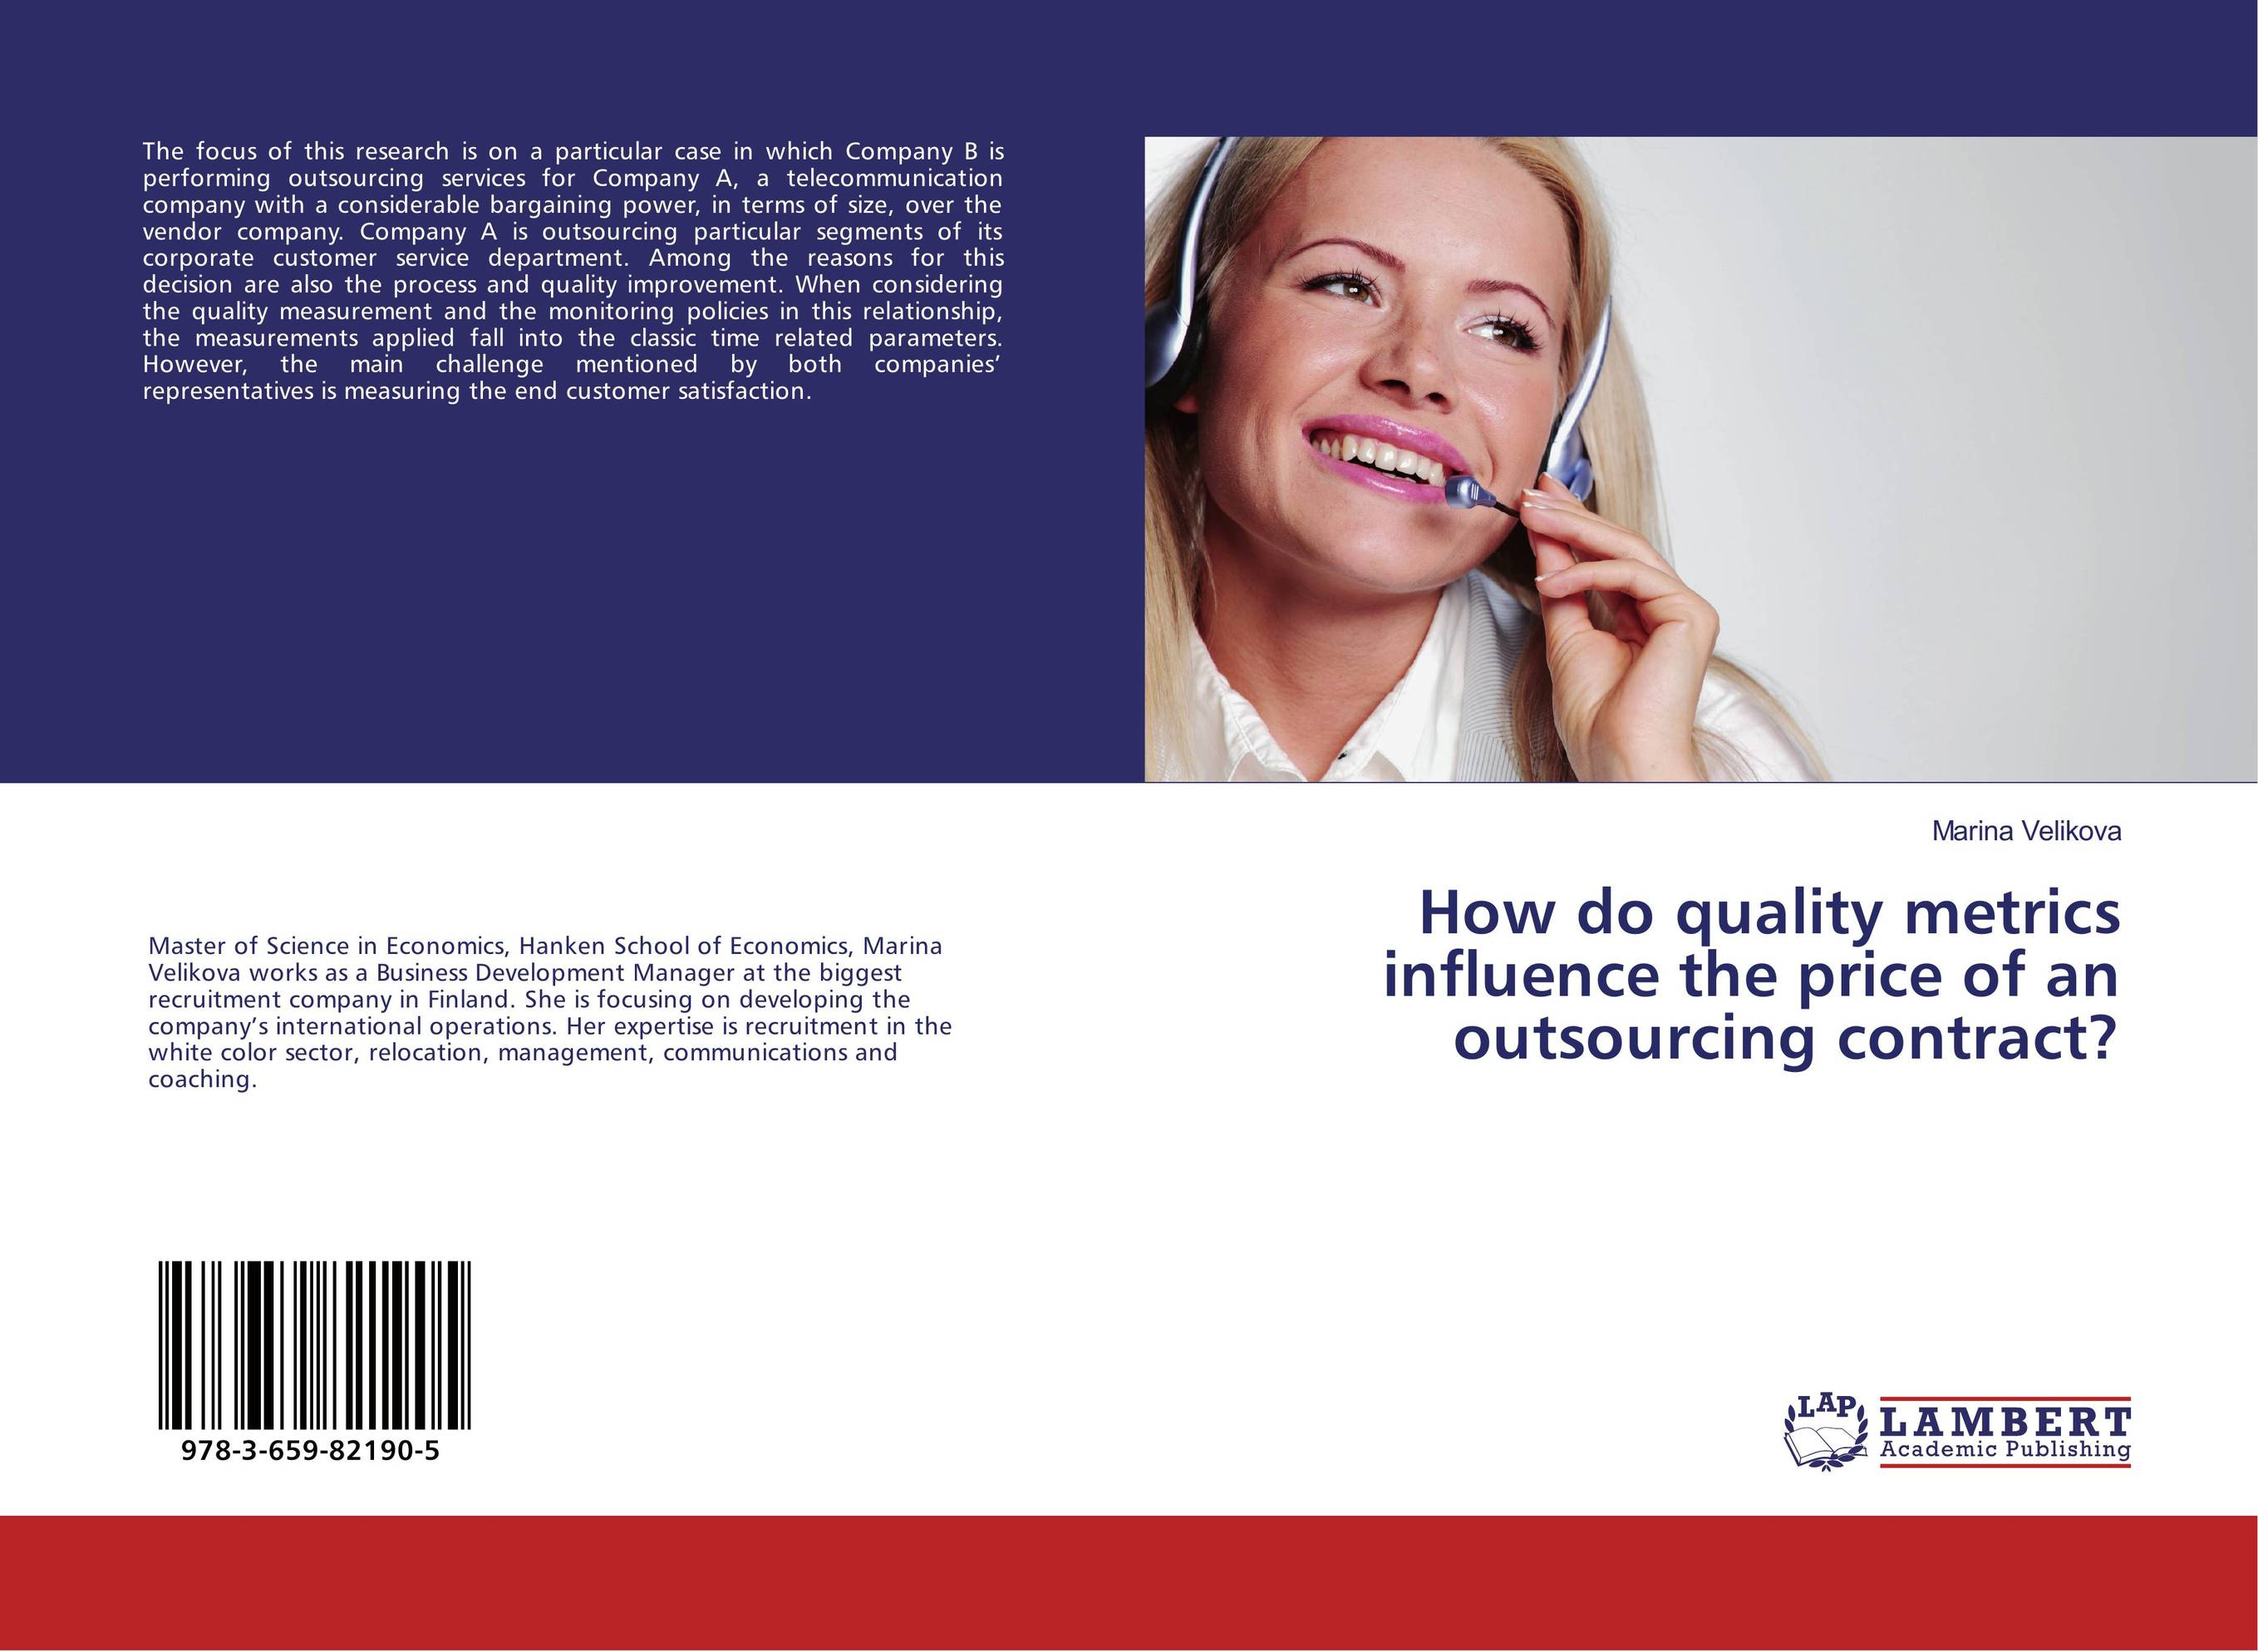 How do quality metrics influence the price of an outsourcing contract?